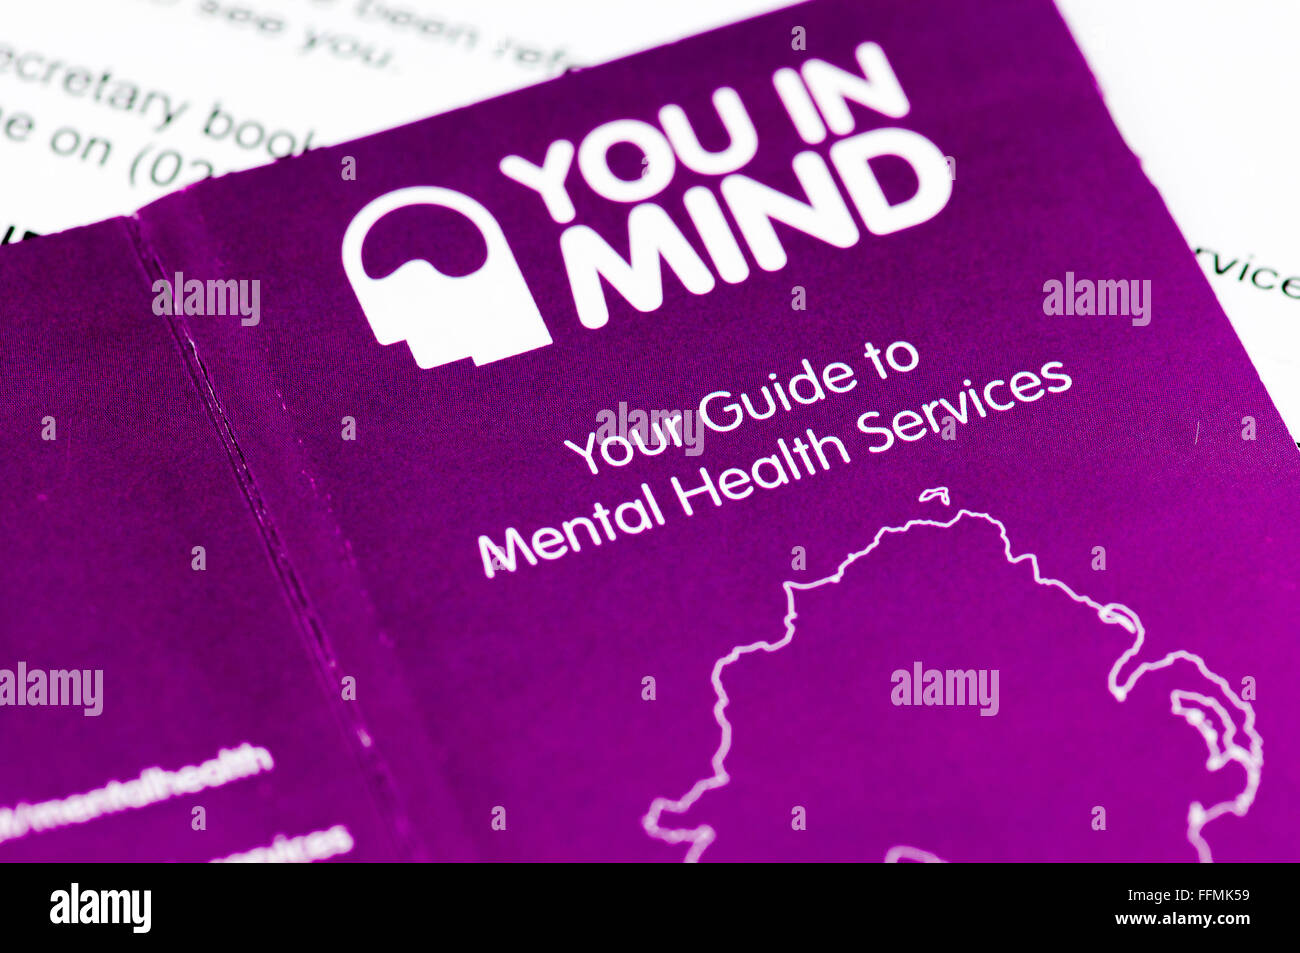 Self-help booklet issued by the Northern Ireland NHS for mental health services. - Stock Image